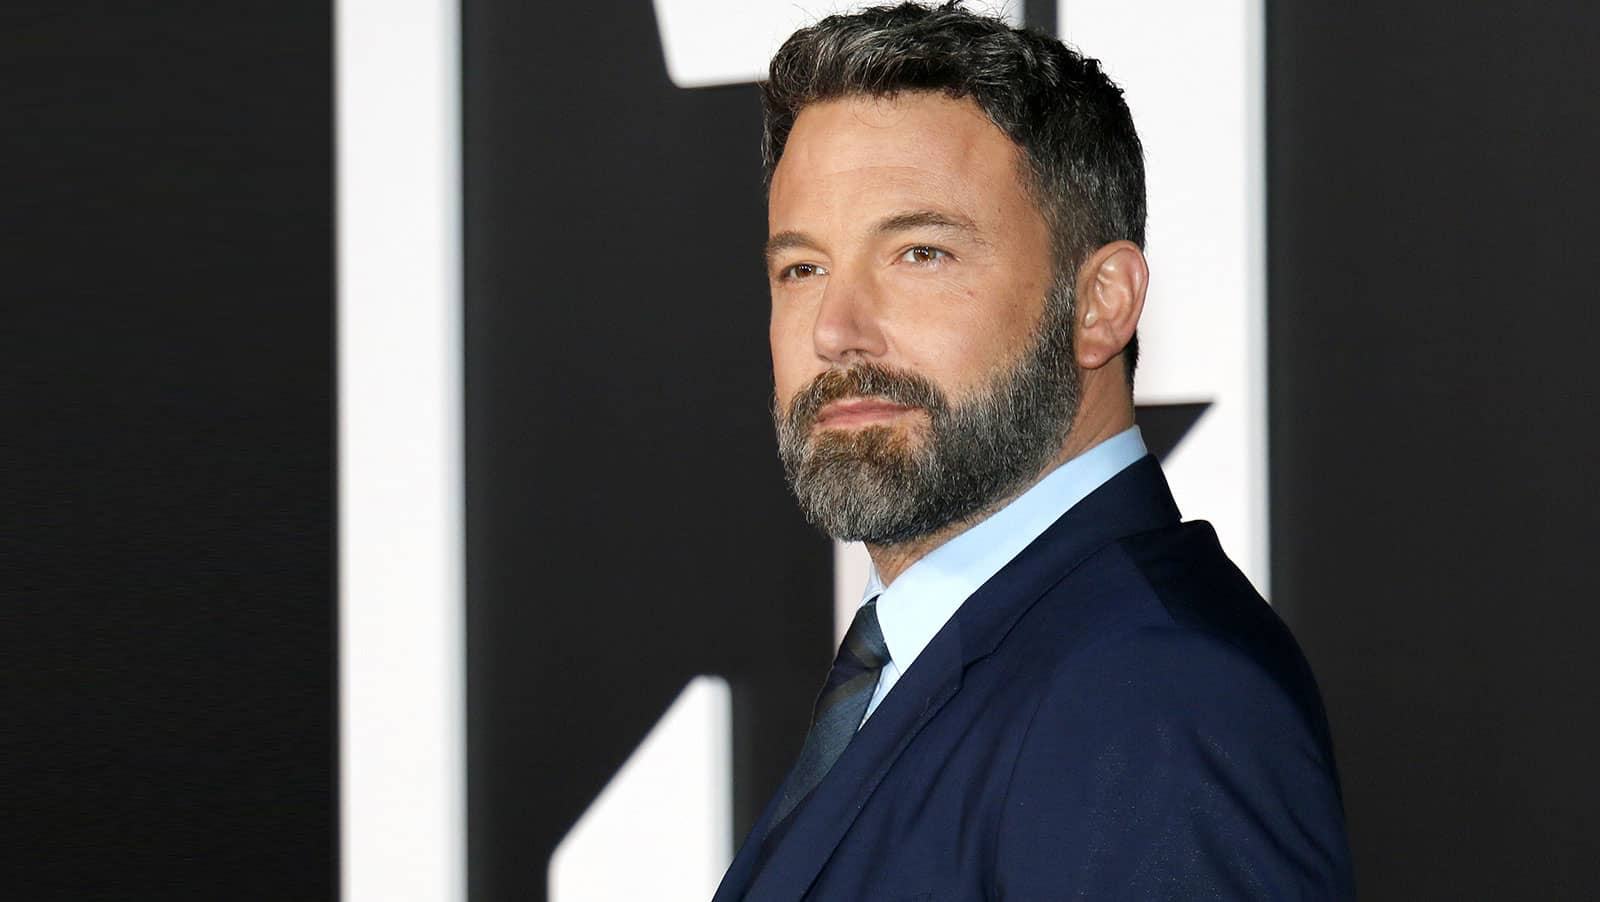 ben-affleck-and-poker-is-it-true-love-or-just-another-jersey-girl-min